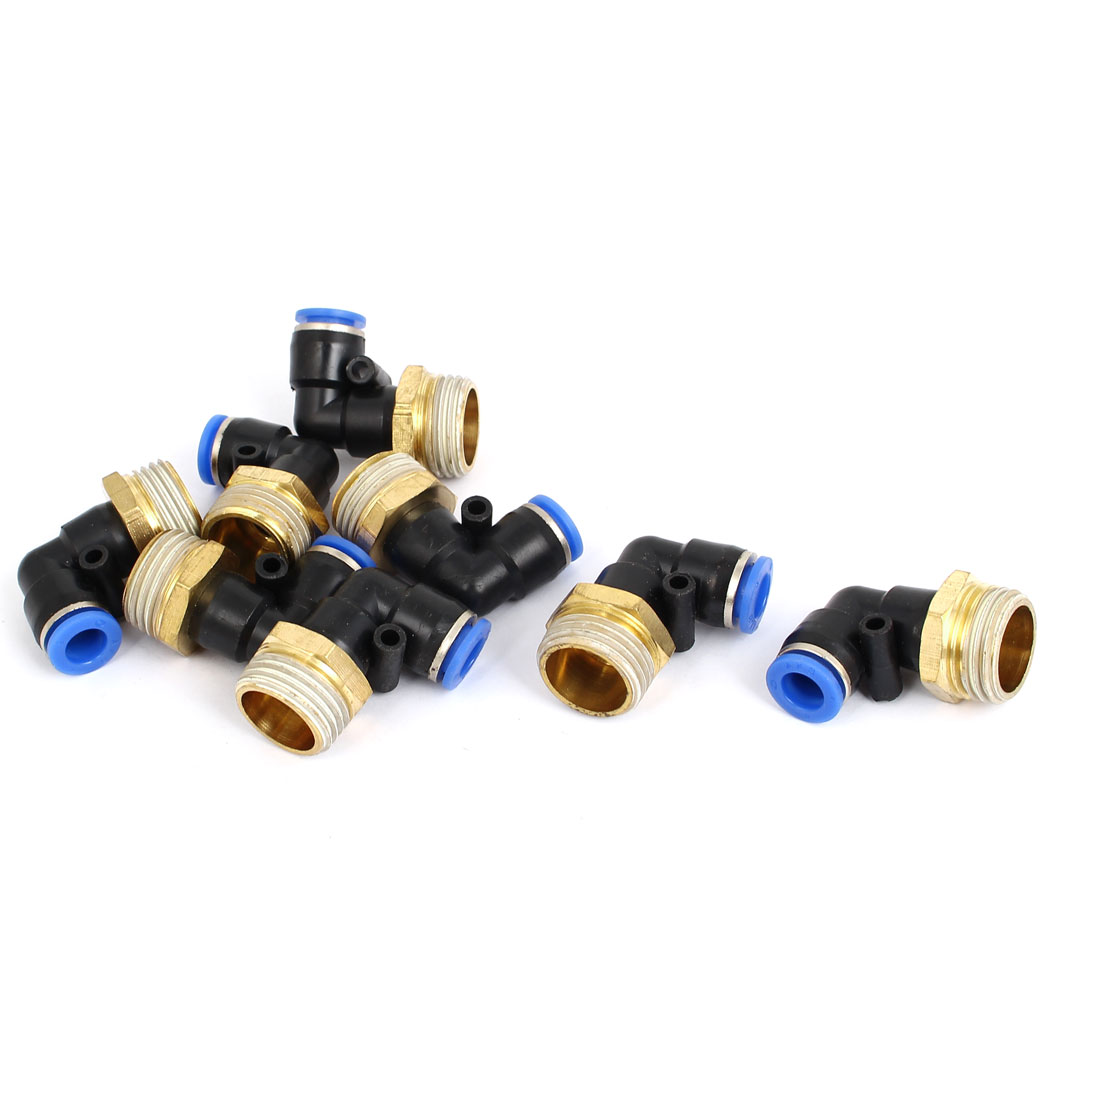 8mm Tube 1/2BSP Male Thread Elbow Union Quick Connect Fittings Coupler 8pcs